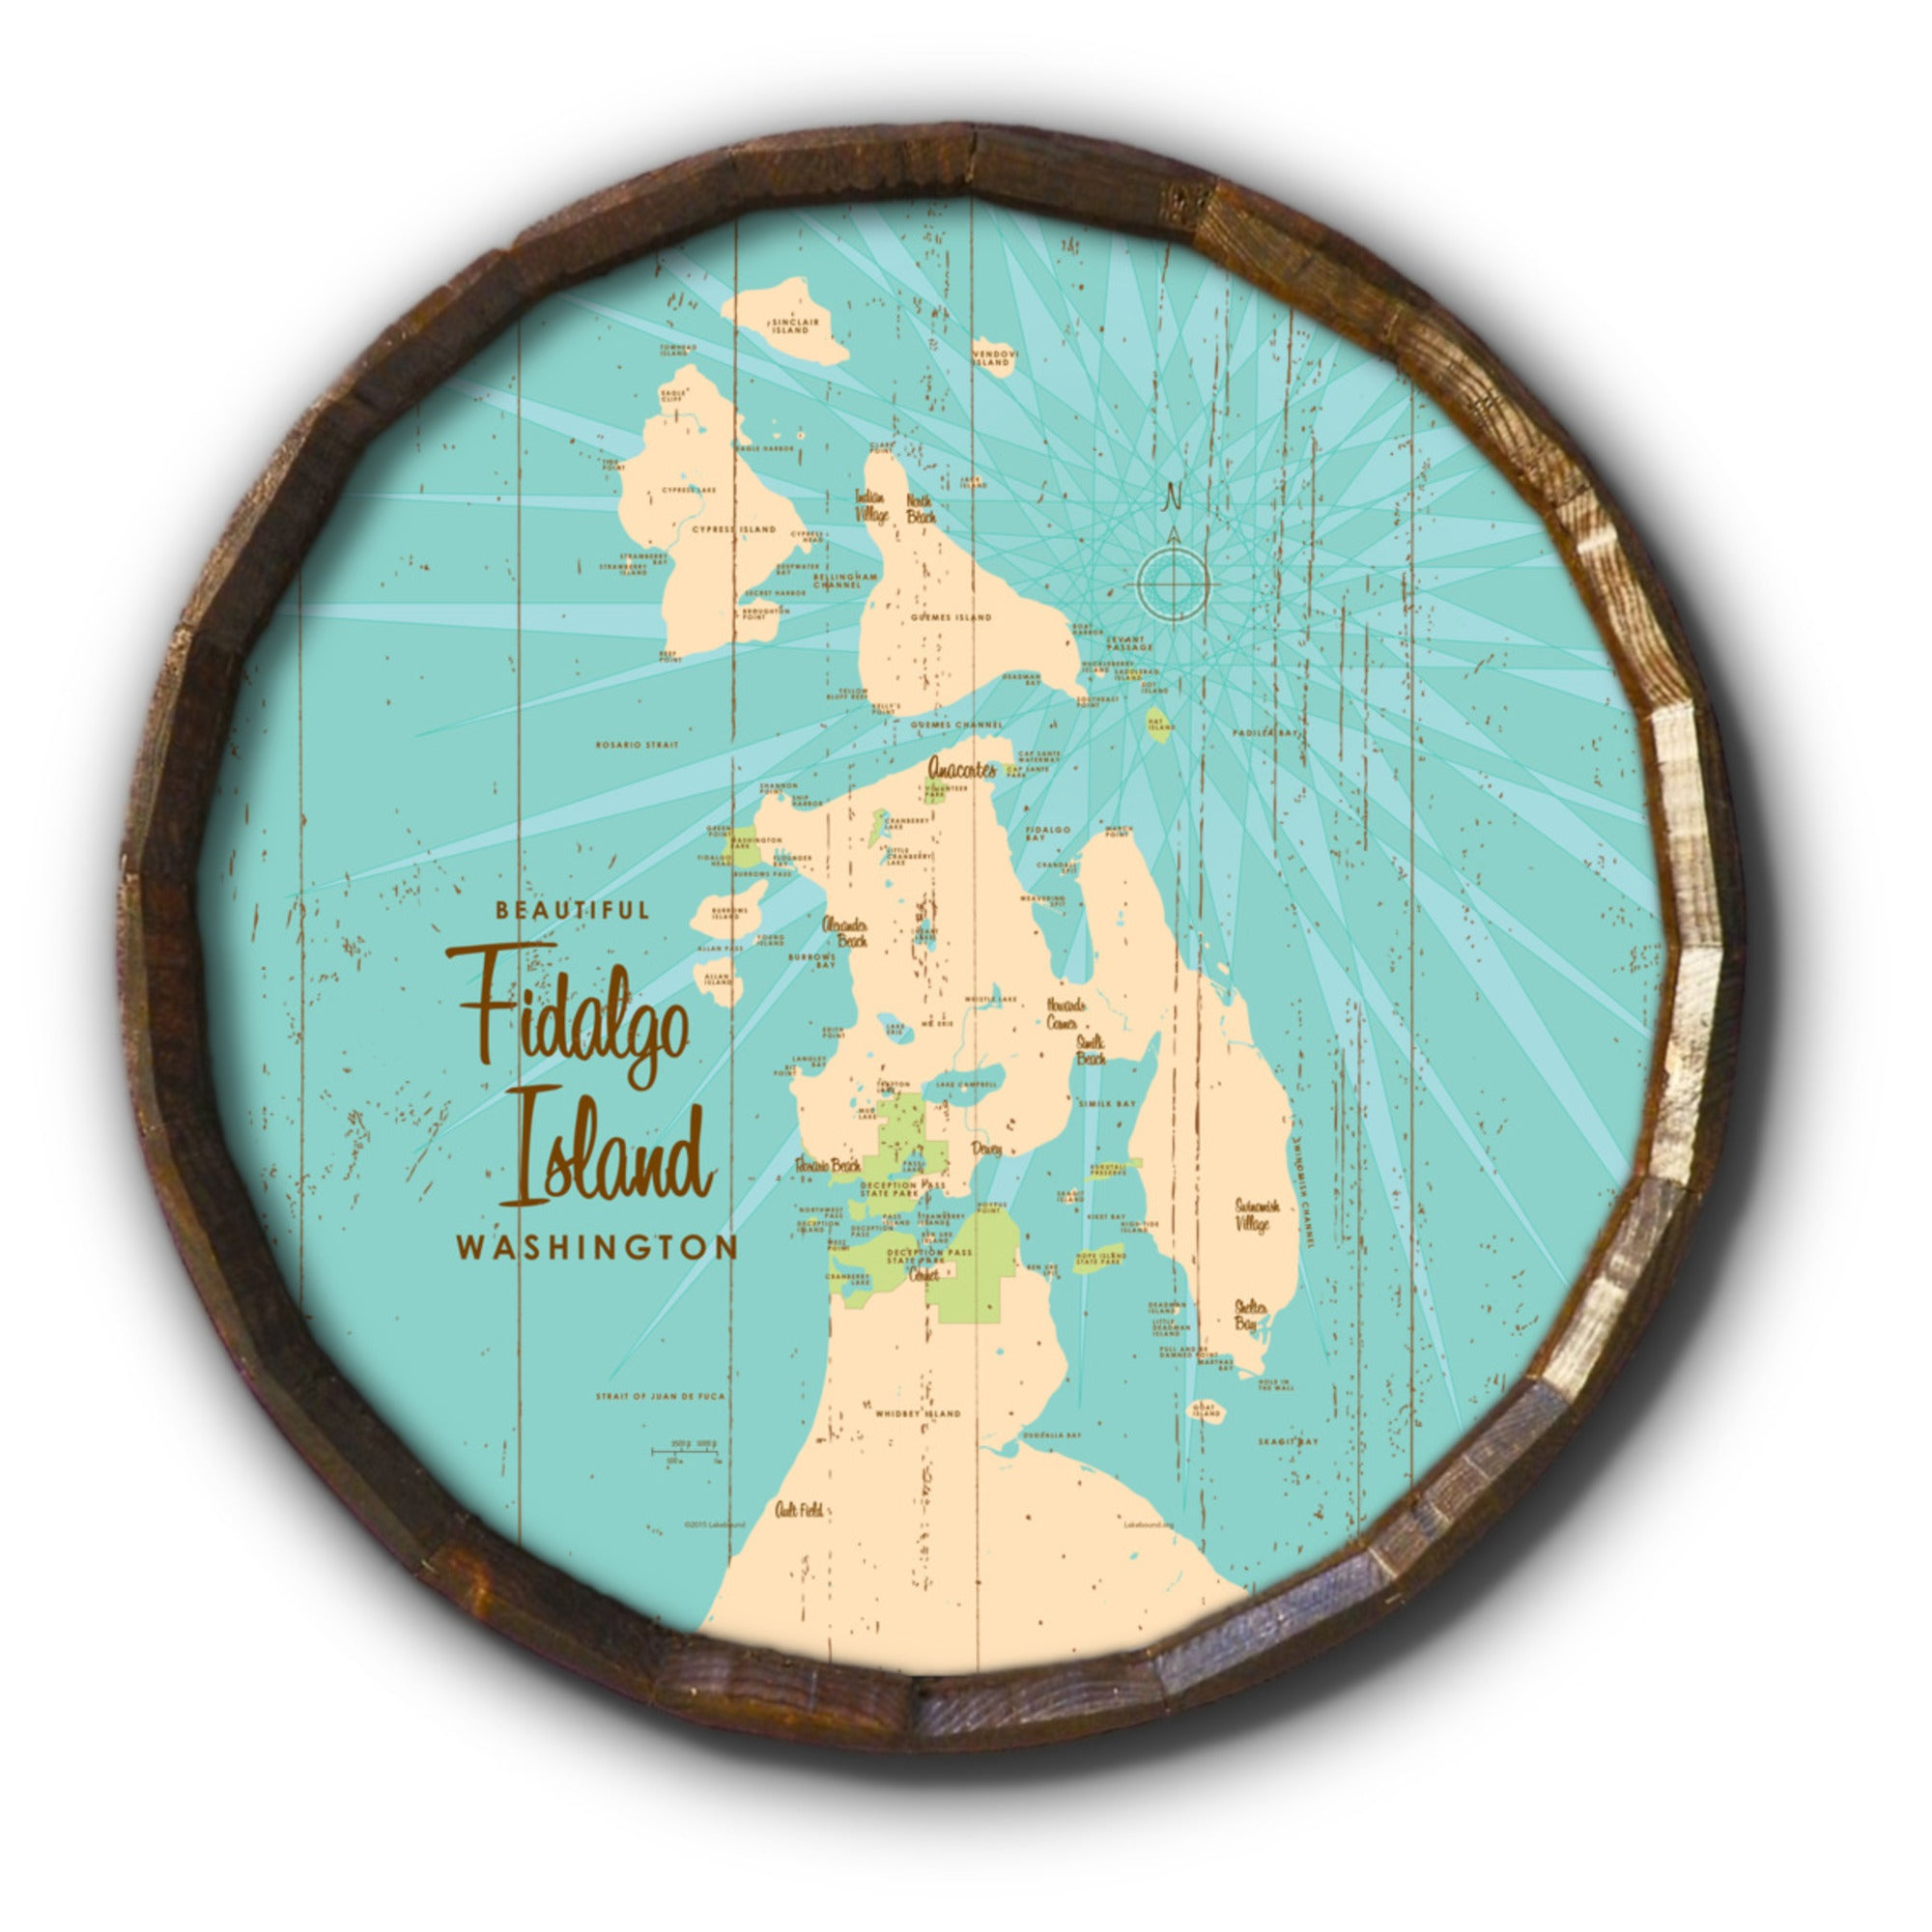 Fidalgo Island Washington, Rustic Barrel End Map Art